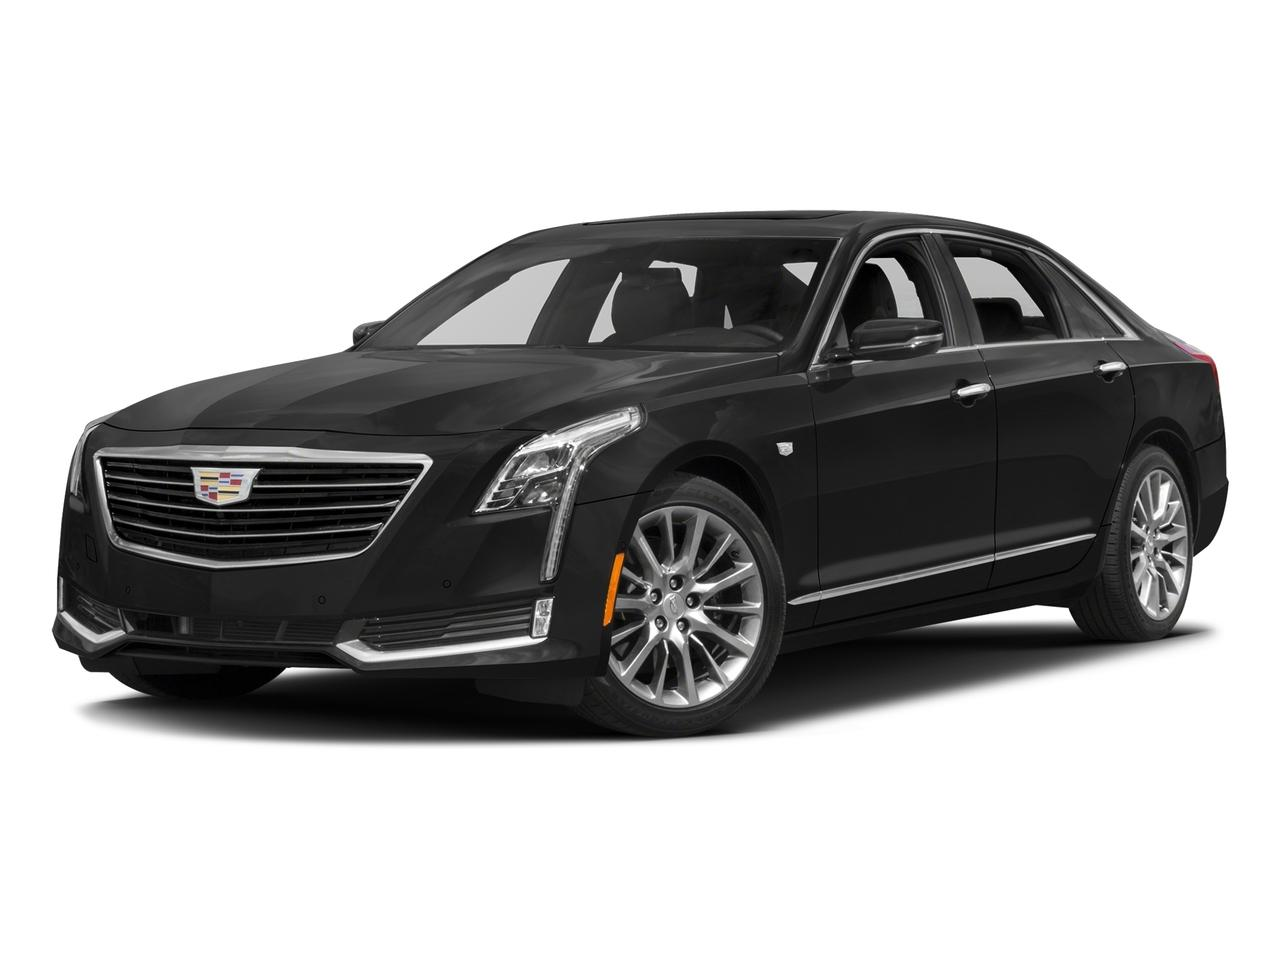 2017 Cadillac CT6 Vehicle Photo in Trevose, PA 19053-4984